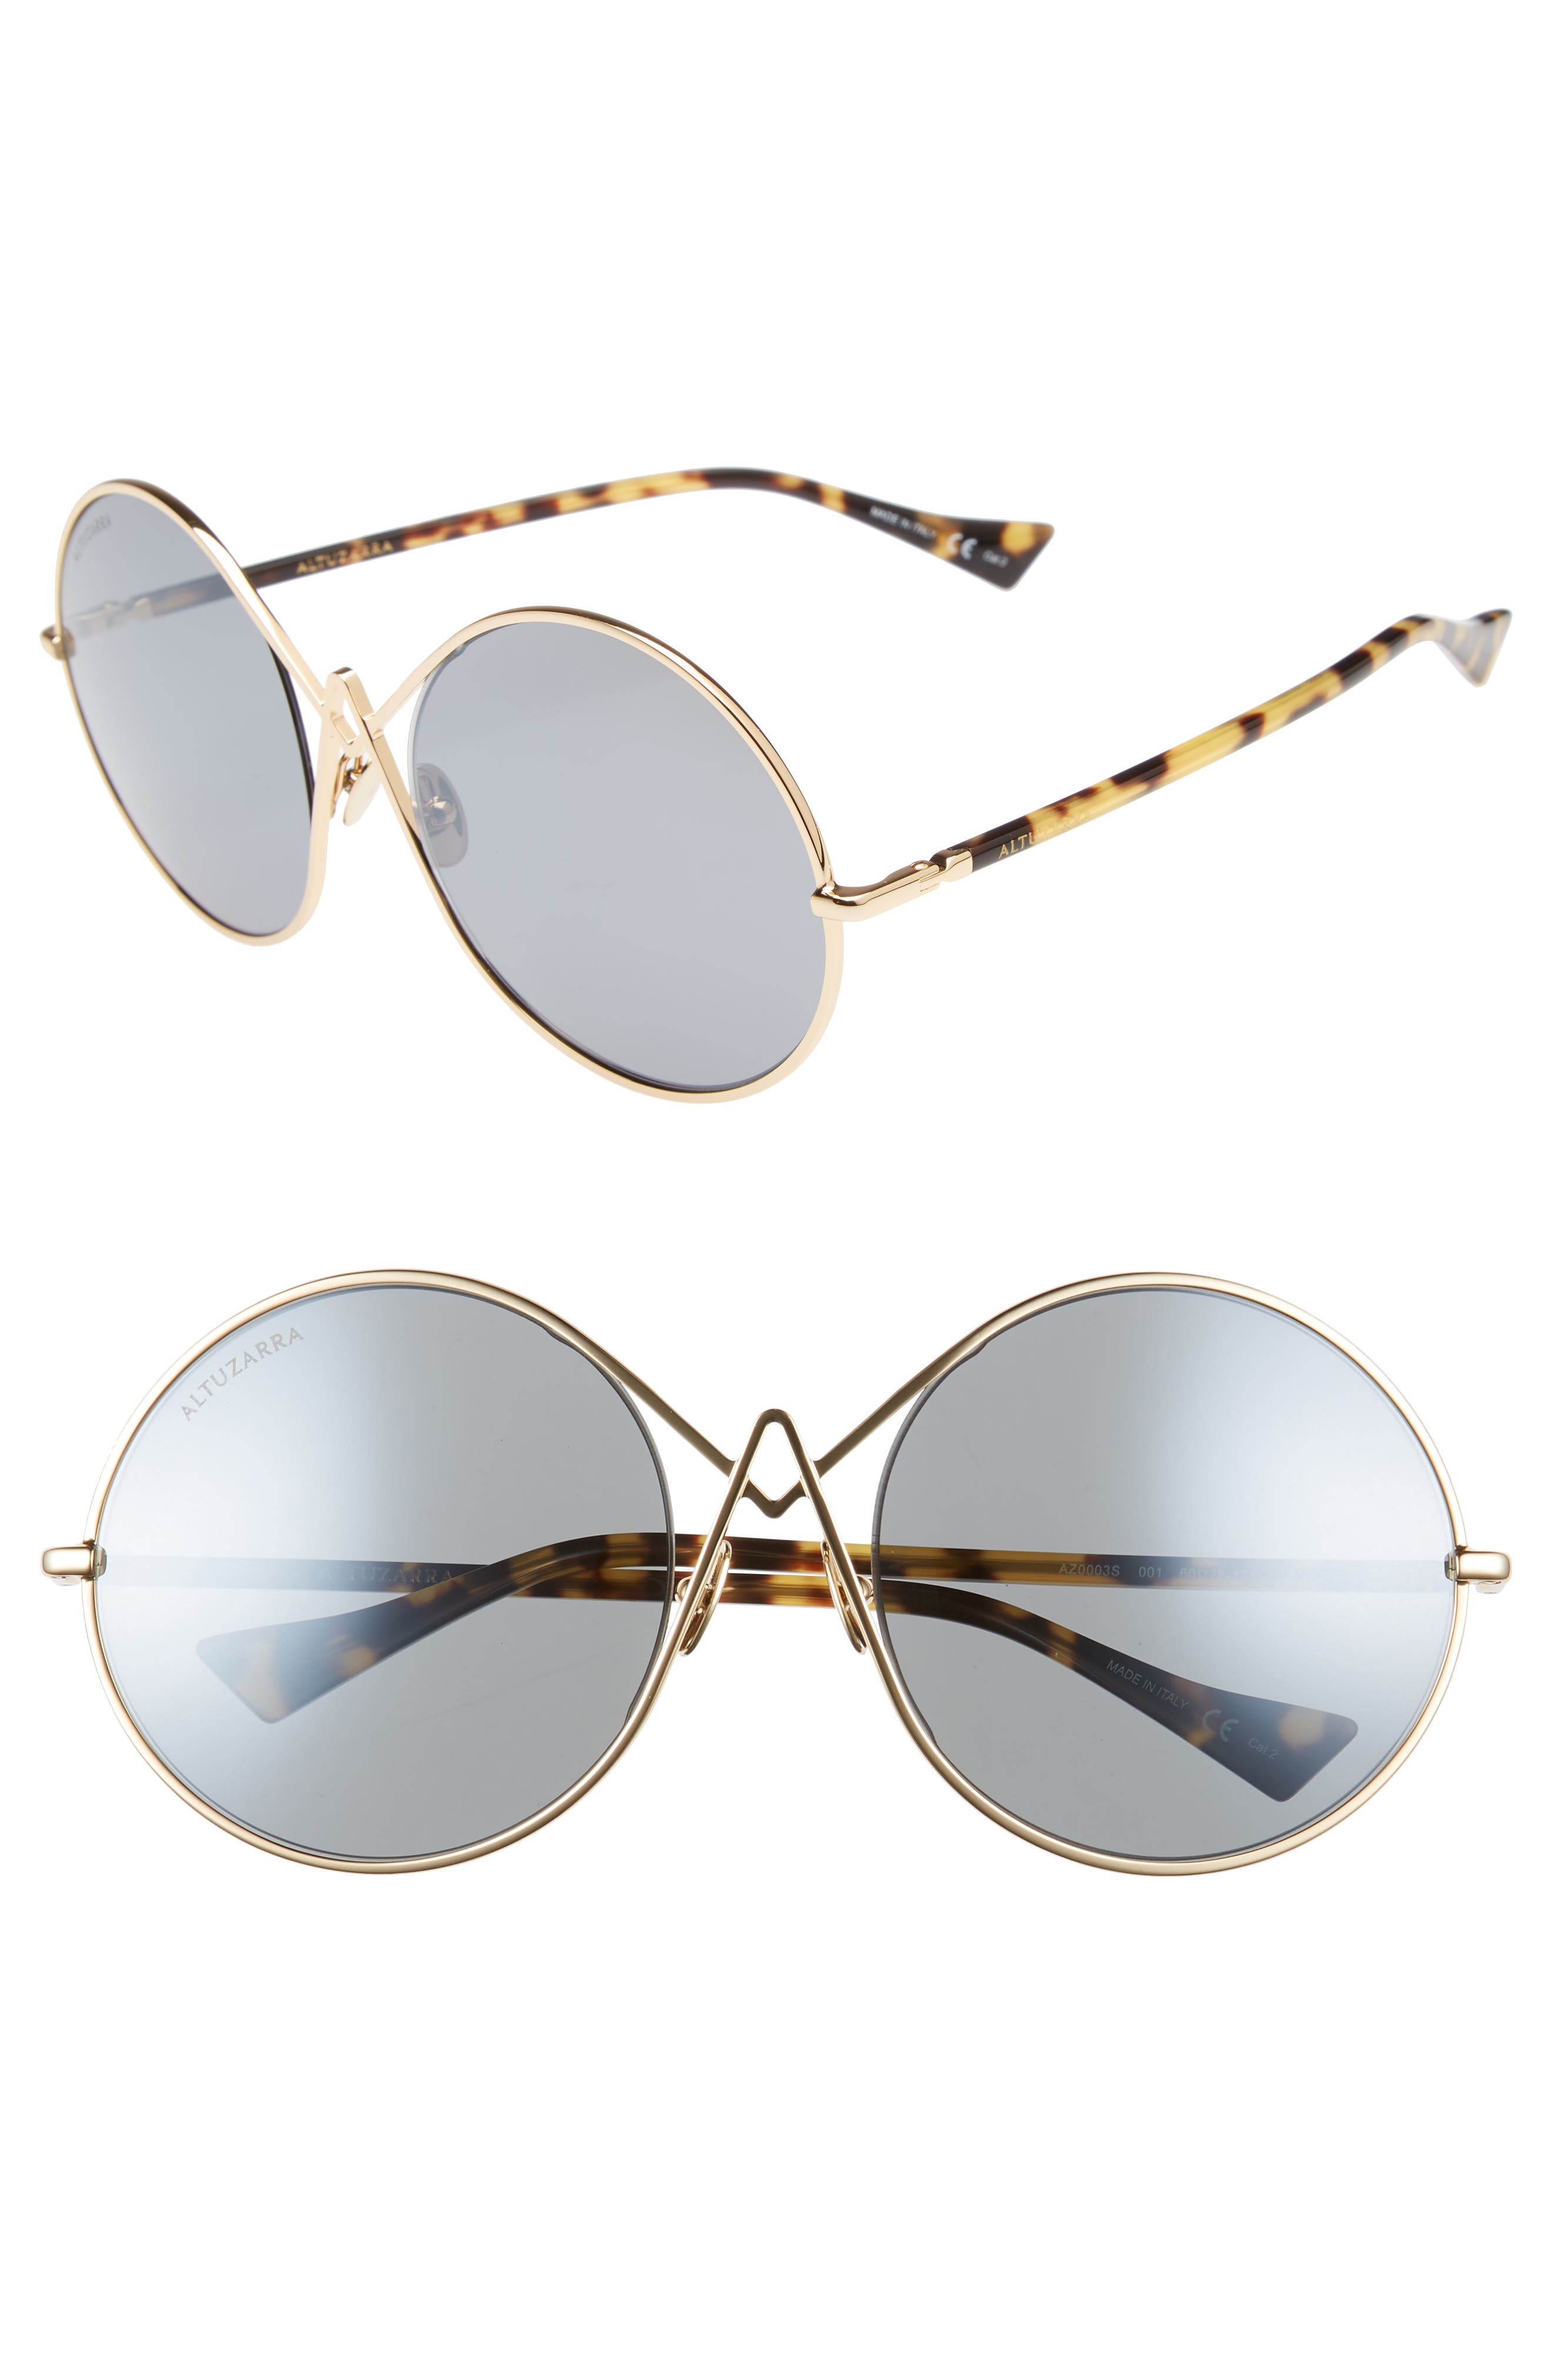 60mm Round Sunglasses,                         Main,                         color, Gold